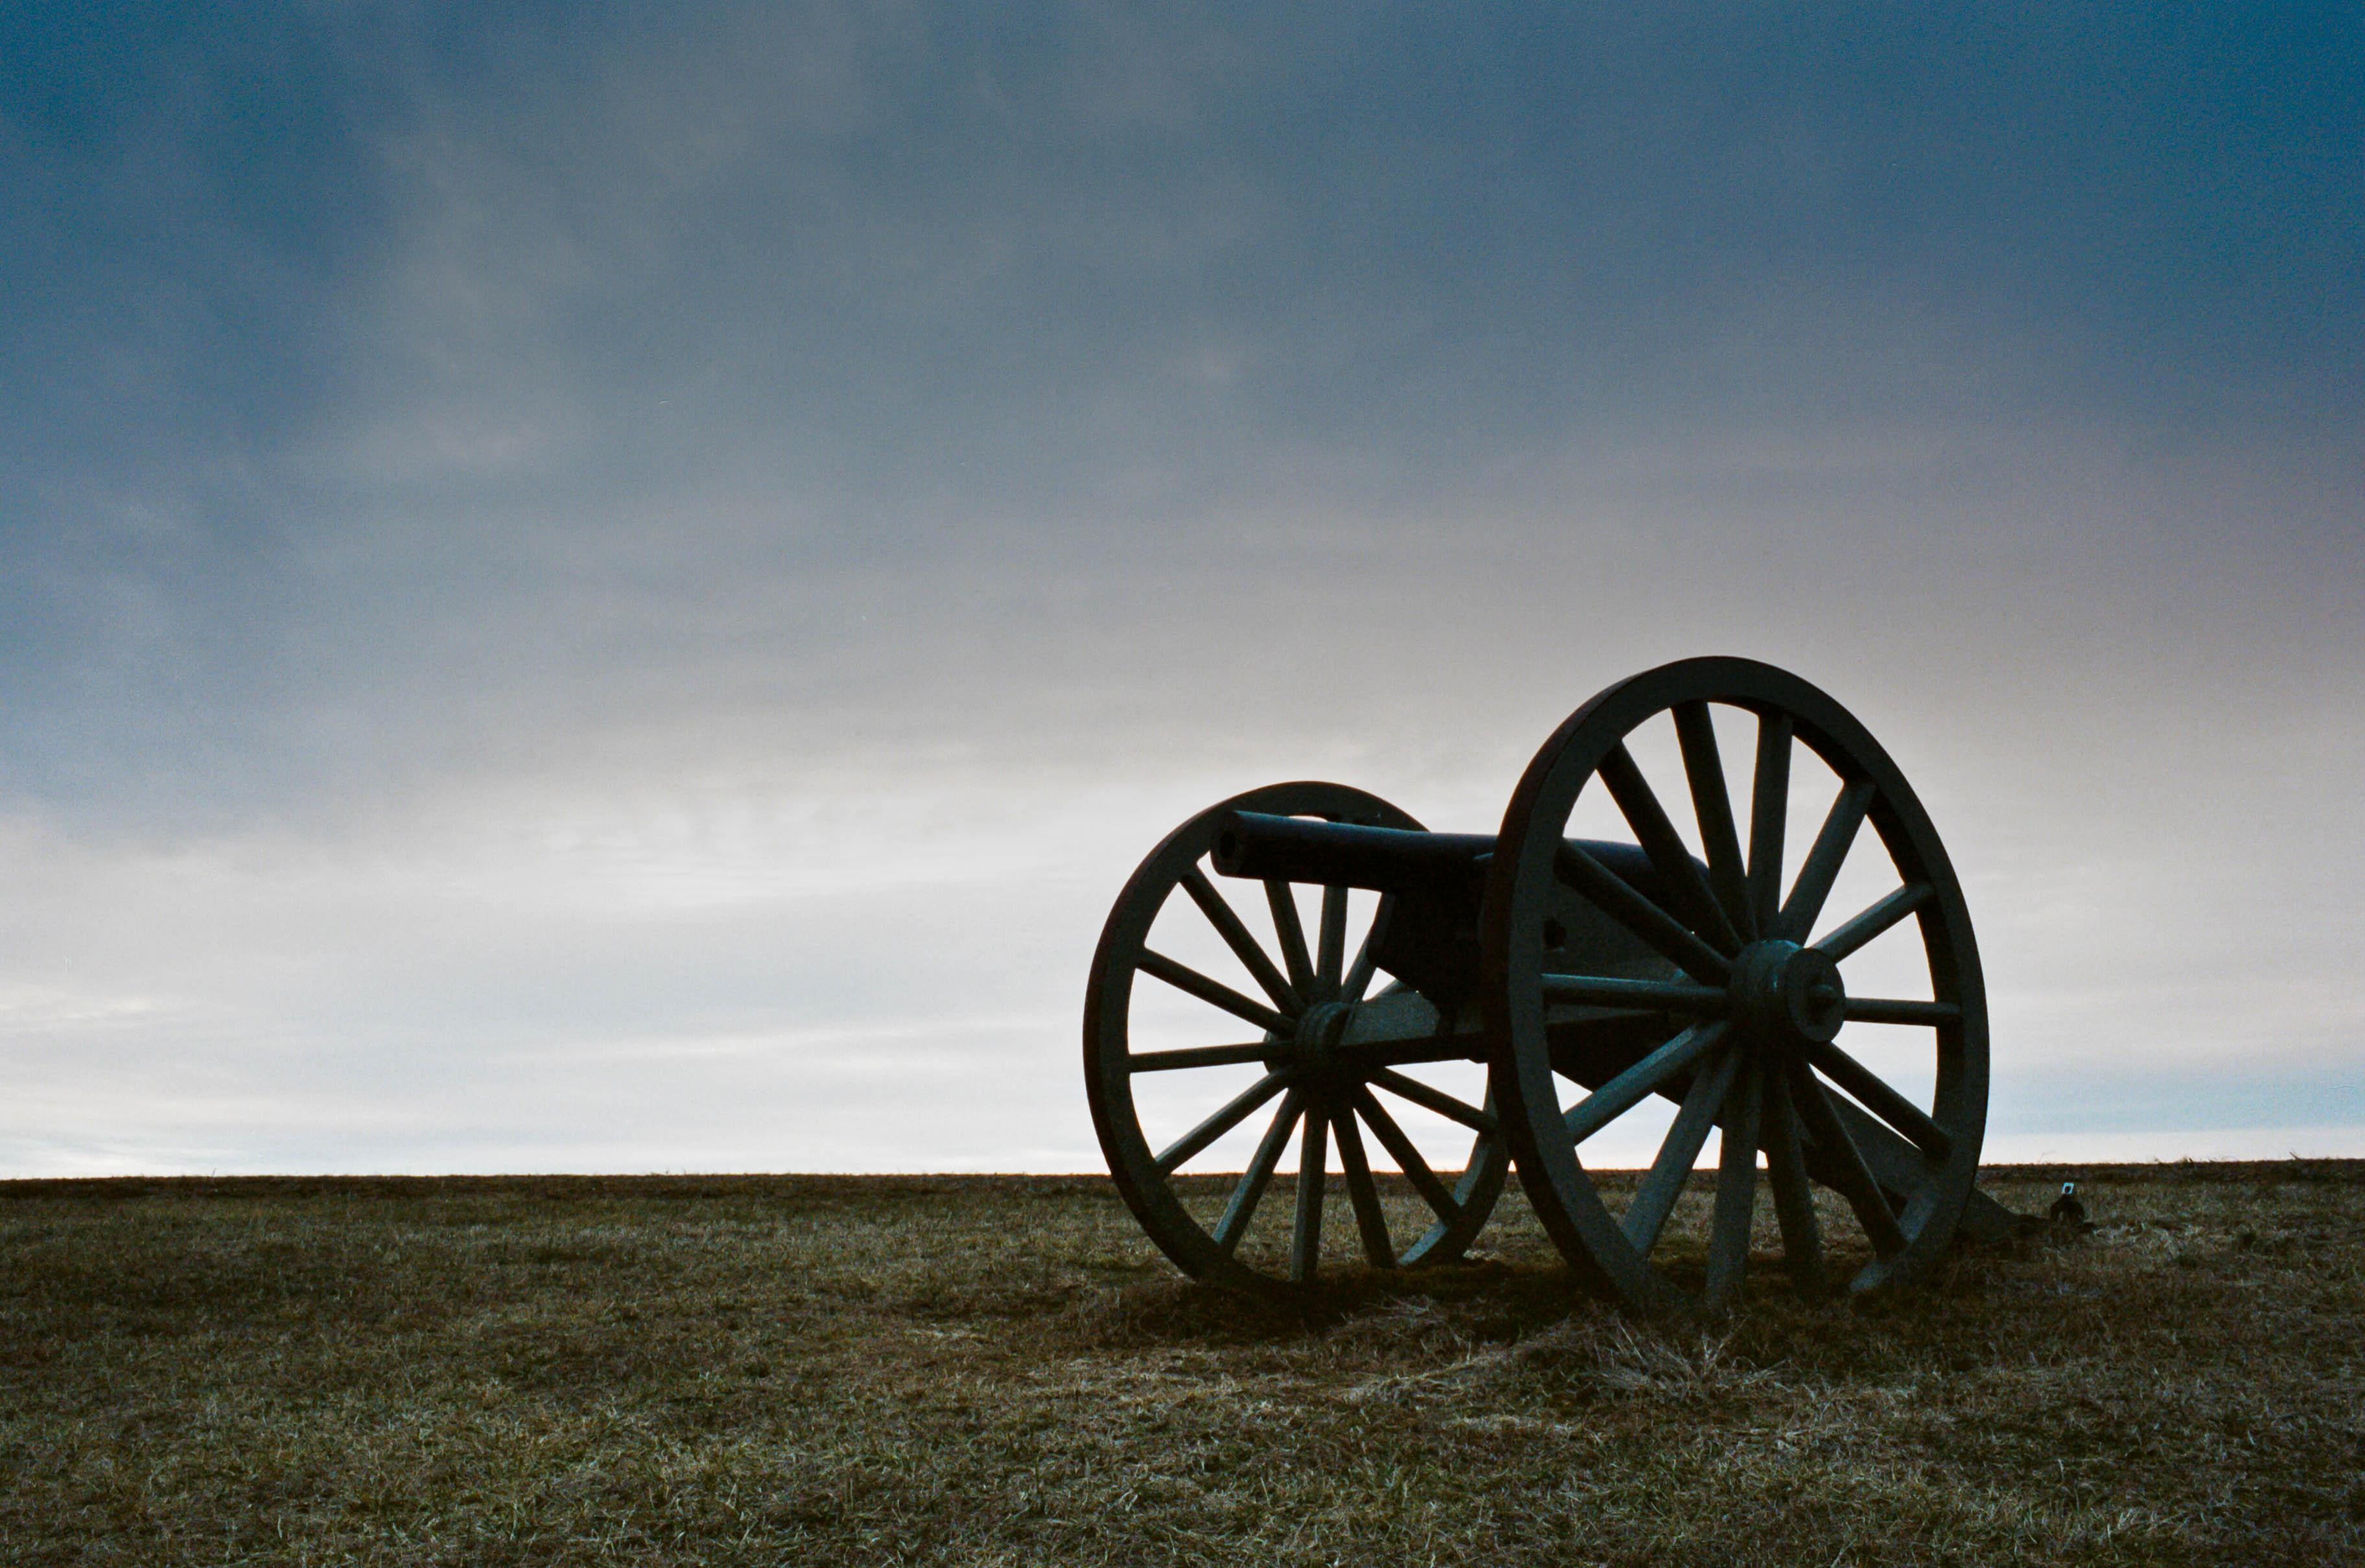 Civil War Cannon at the Spring Hill Battle Field just after Sunset -  Tennessee